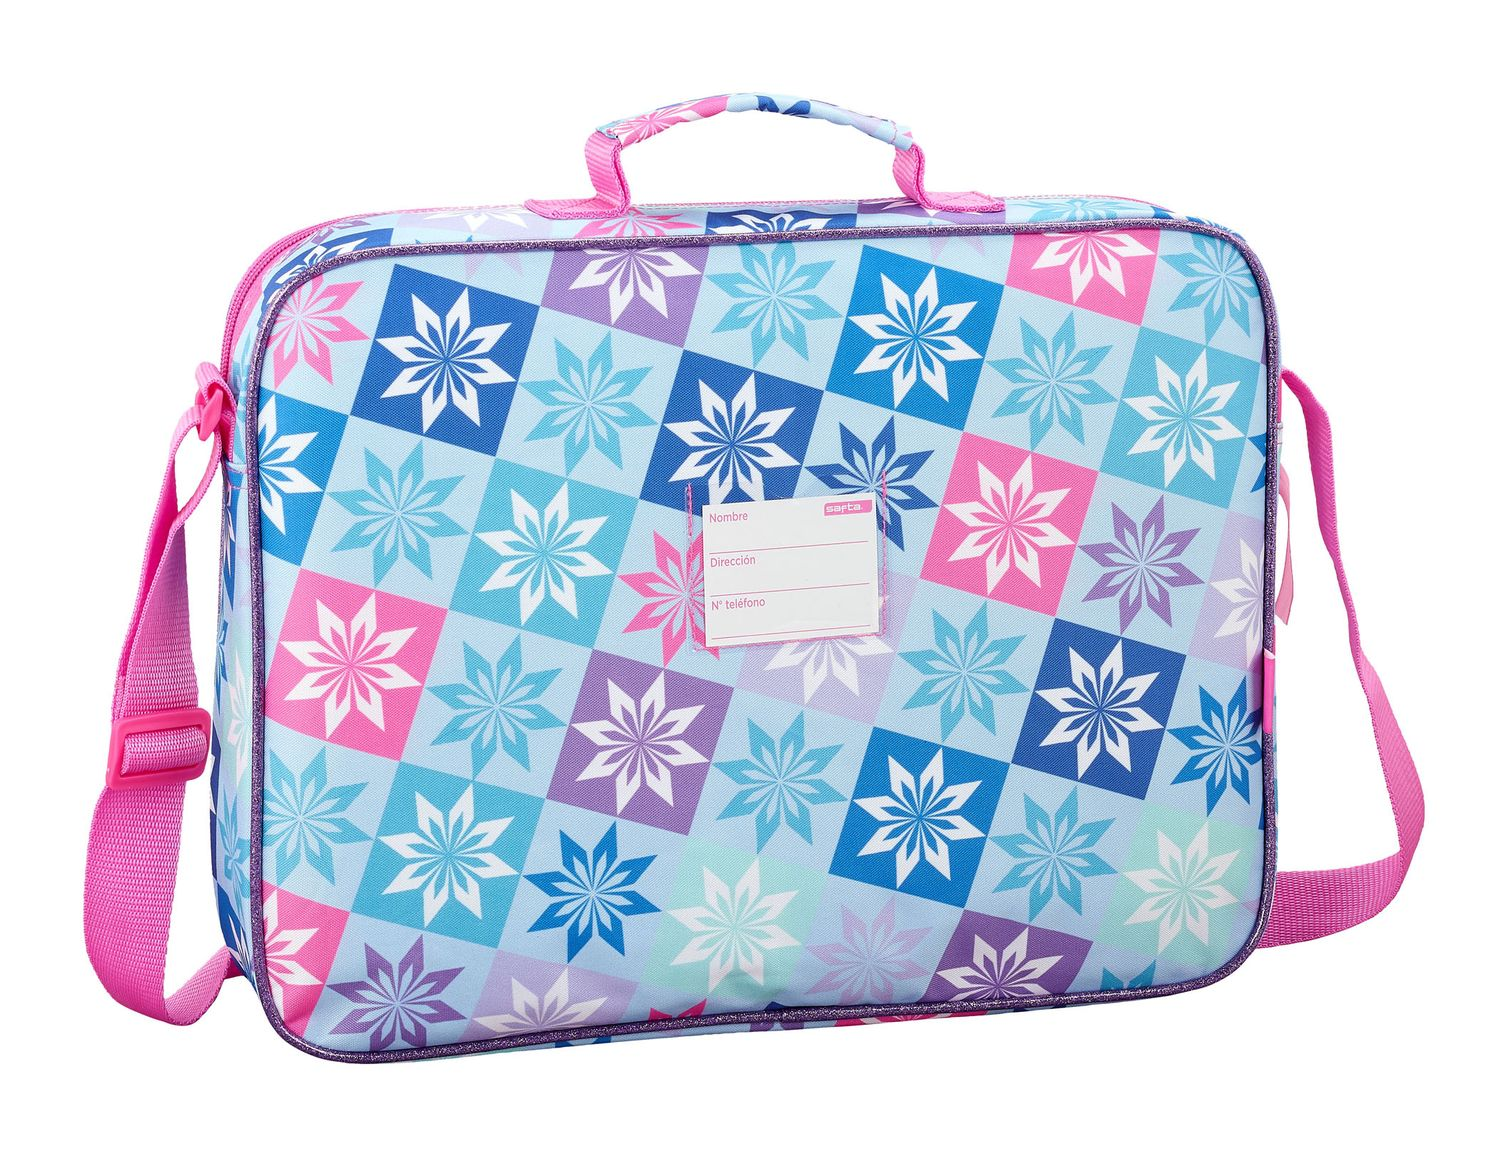 Disney Frozen Ice Magic Briefcase Shoulder Bag 38cm – image 2